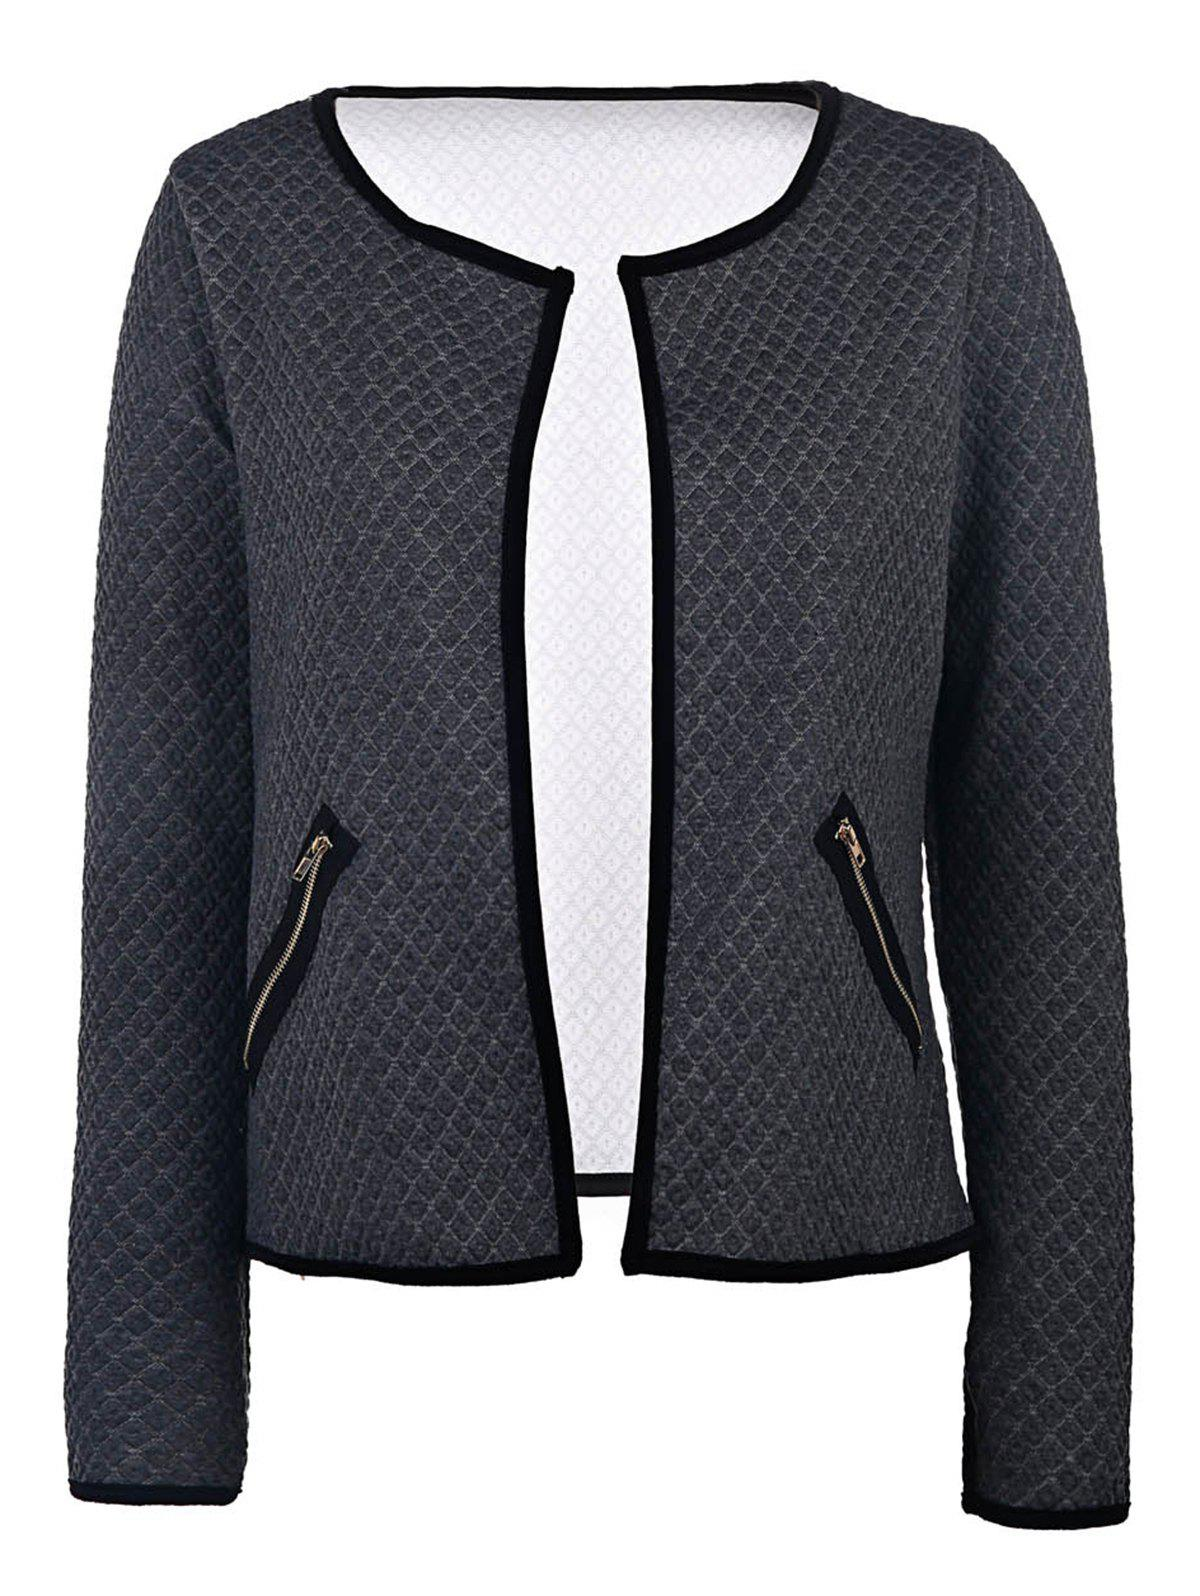 Fancy Stylish Scoop Neck Long Sleeve Embossed Jacket For Women